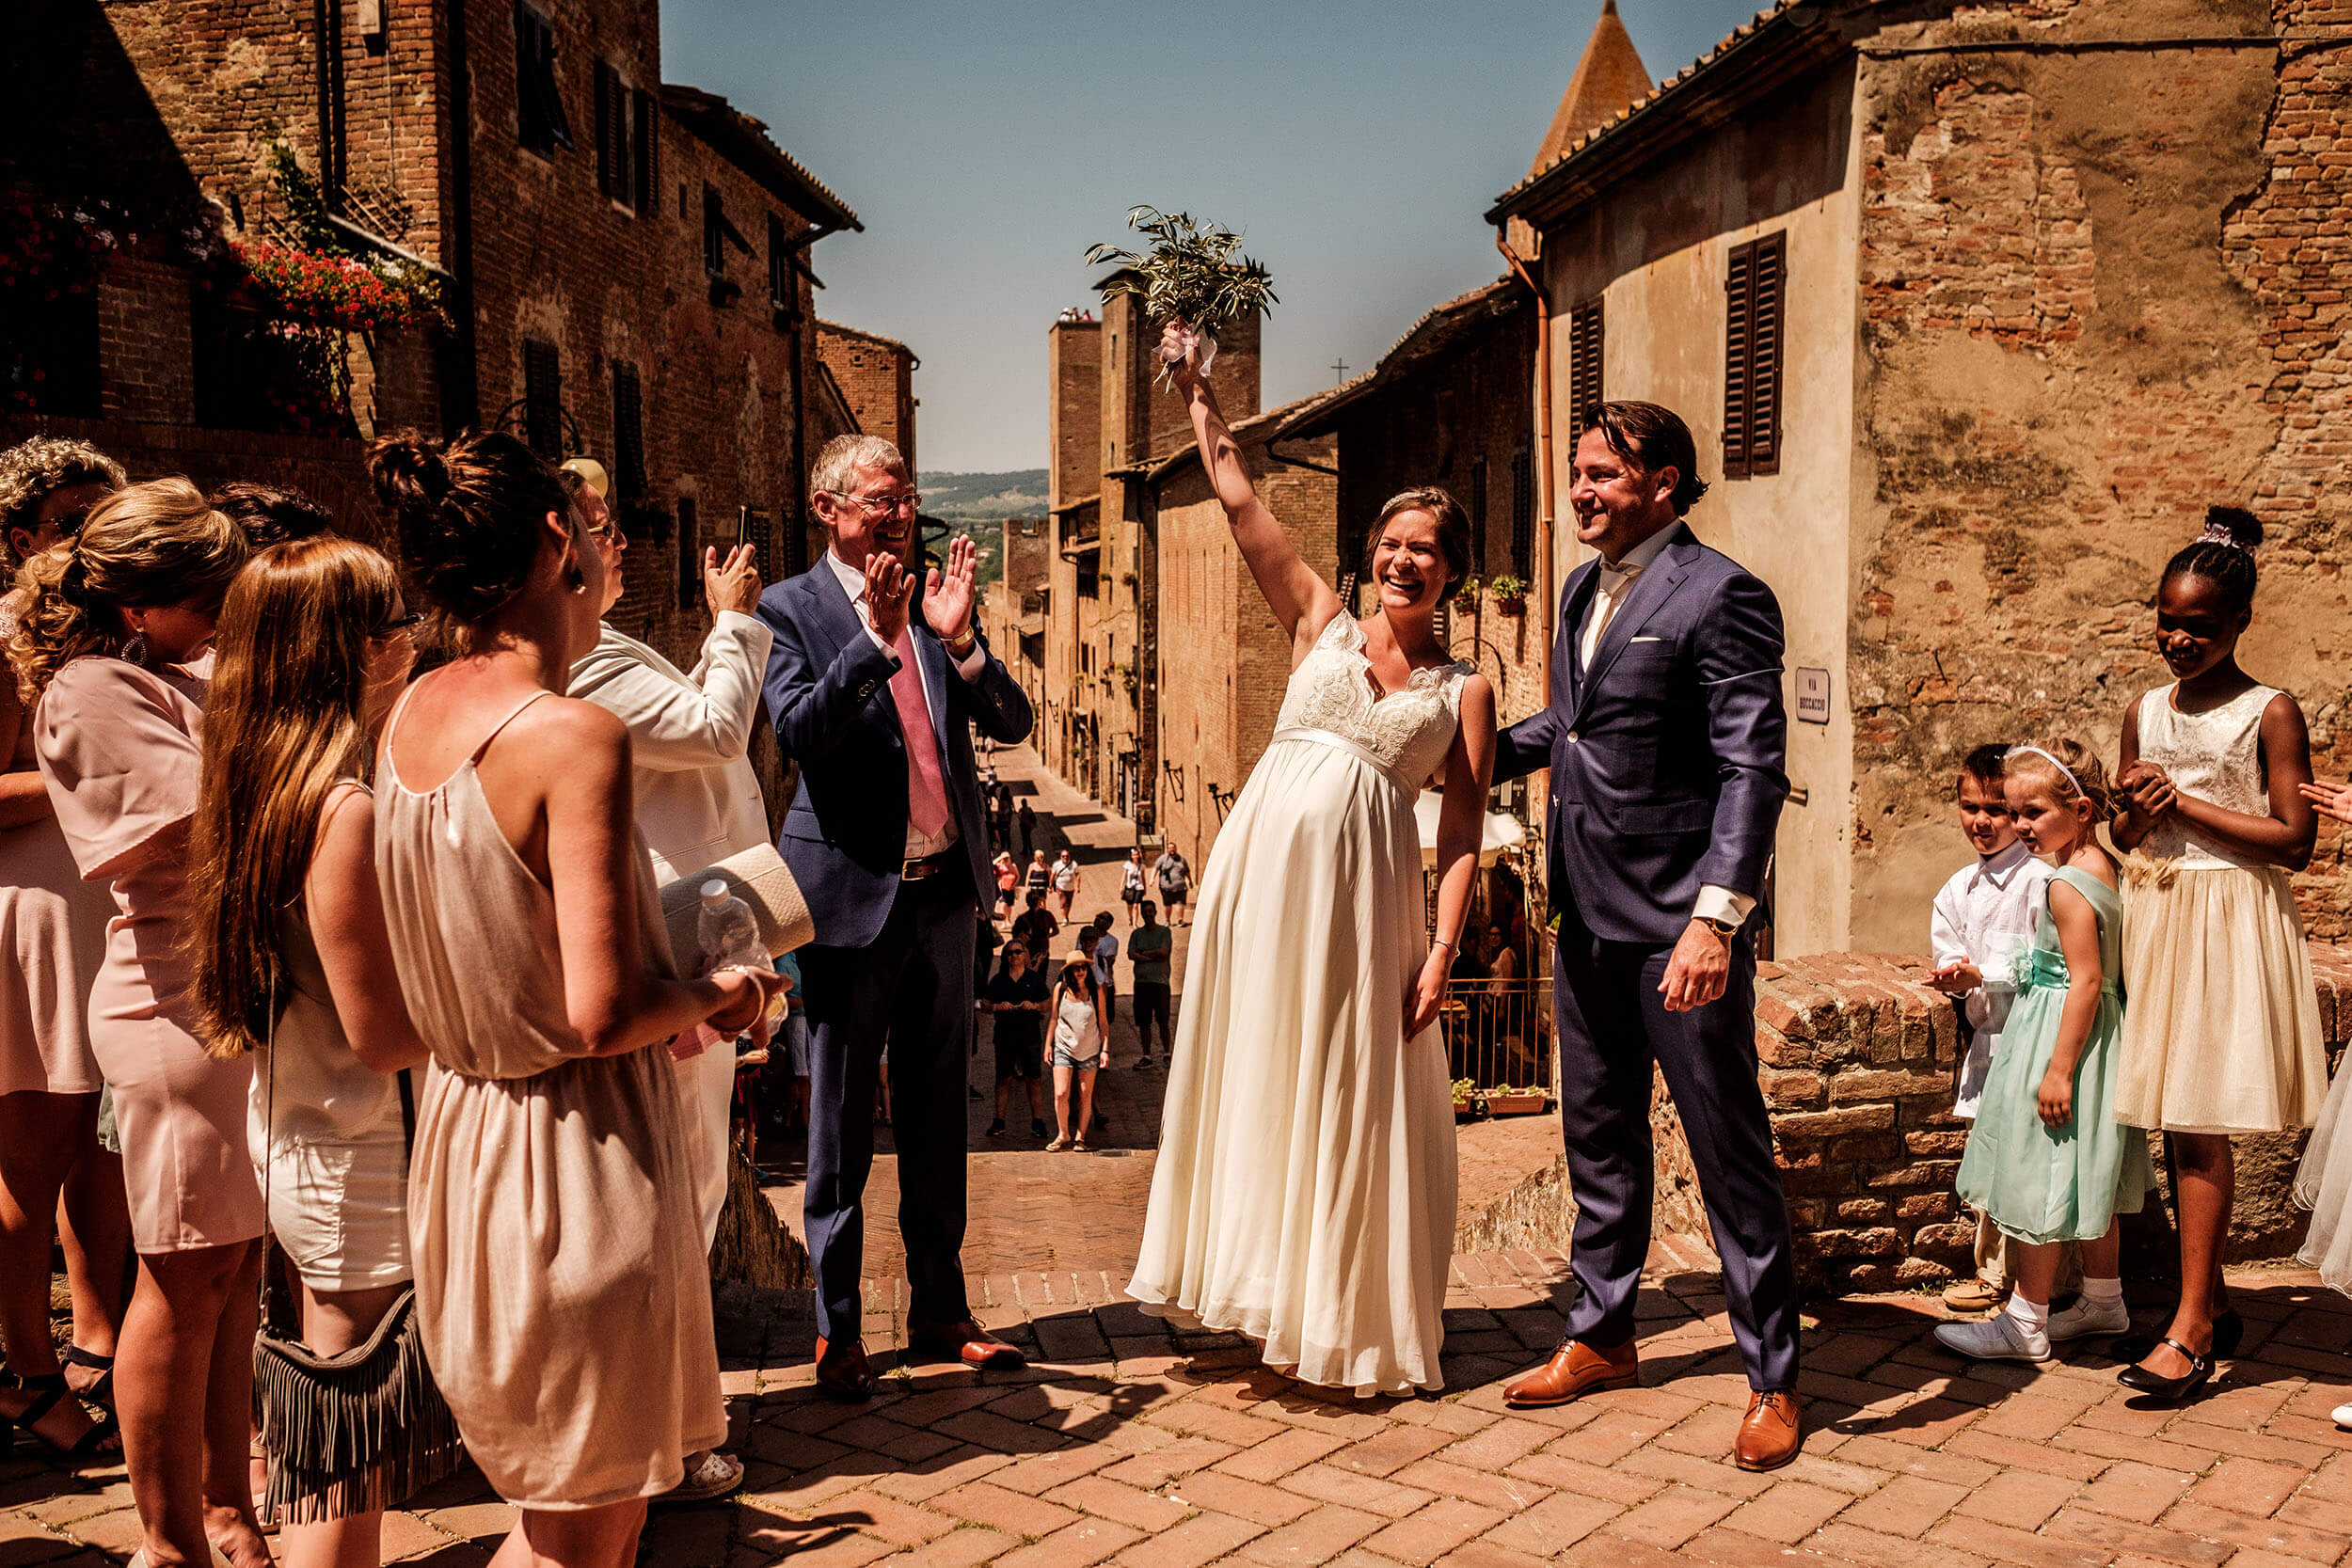 De destination wedding van Tara en Vincent in Toscane, Italië | Tara and Vincents destination wedding in Tuscany, Italy